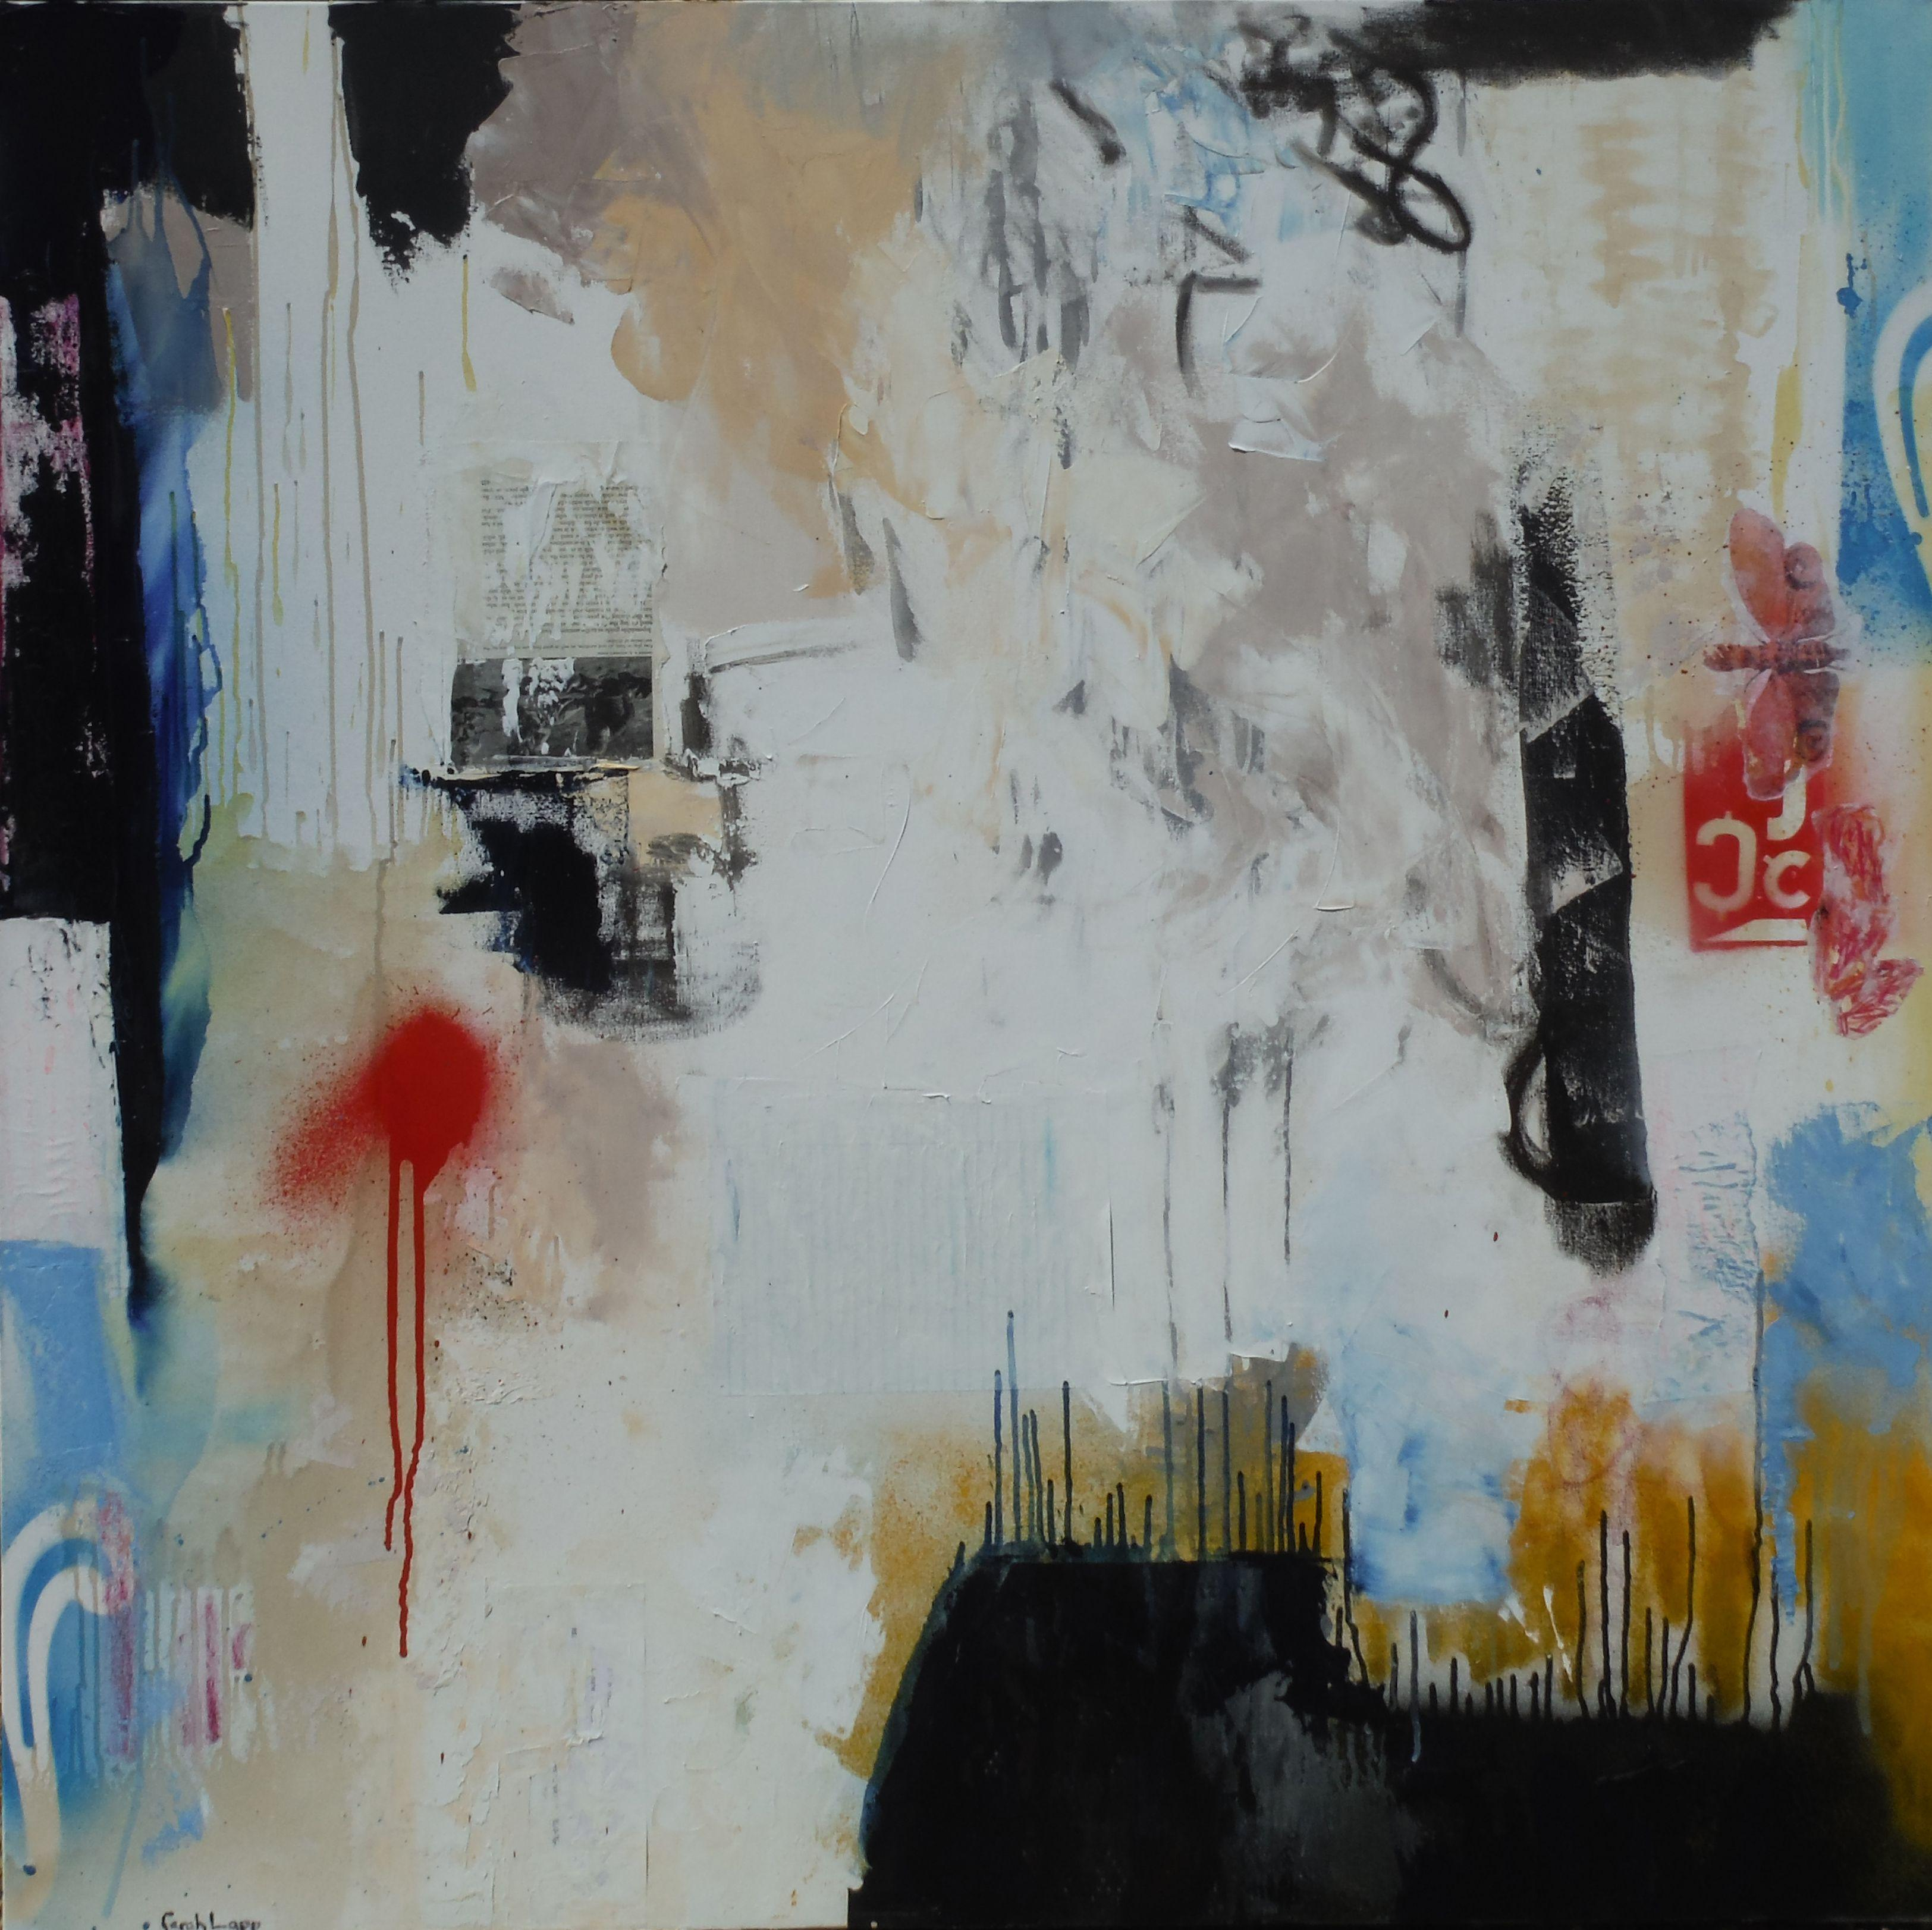 All This Could Be Yours, Mixed Media on Canvas